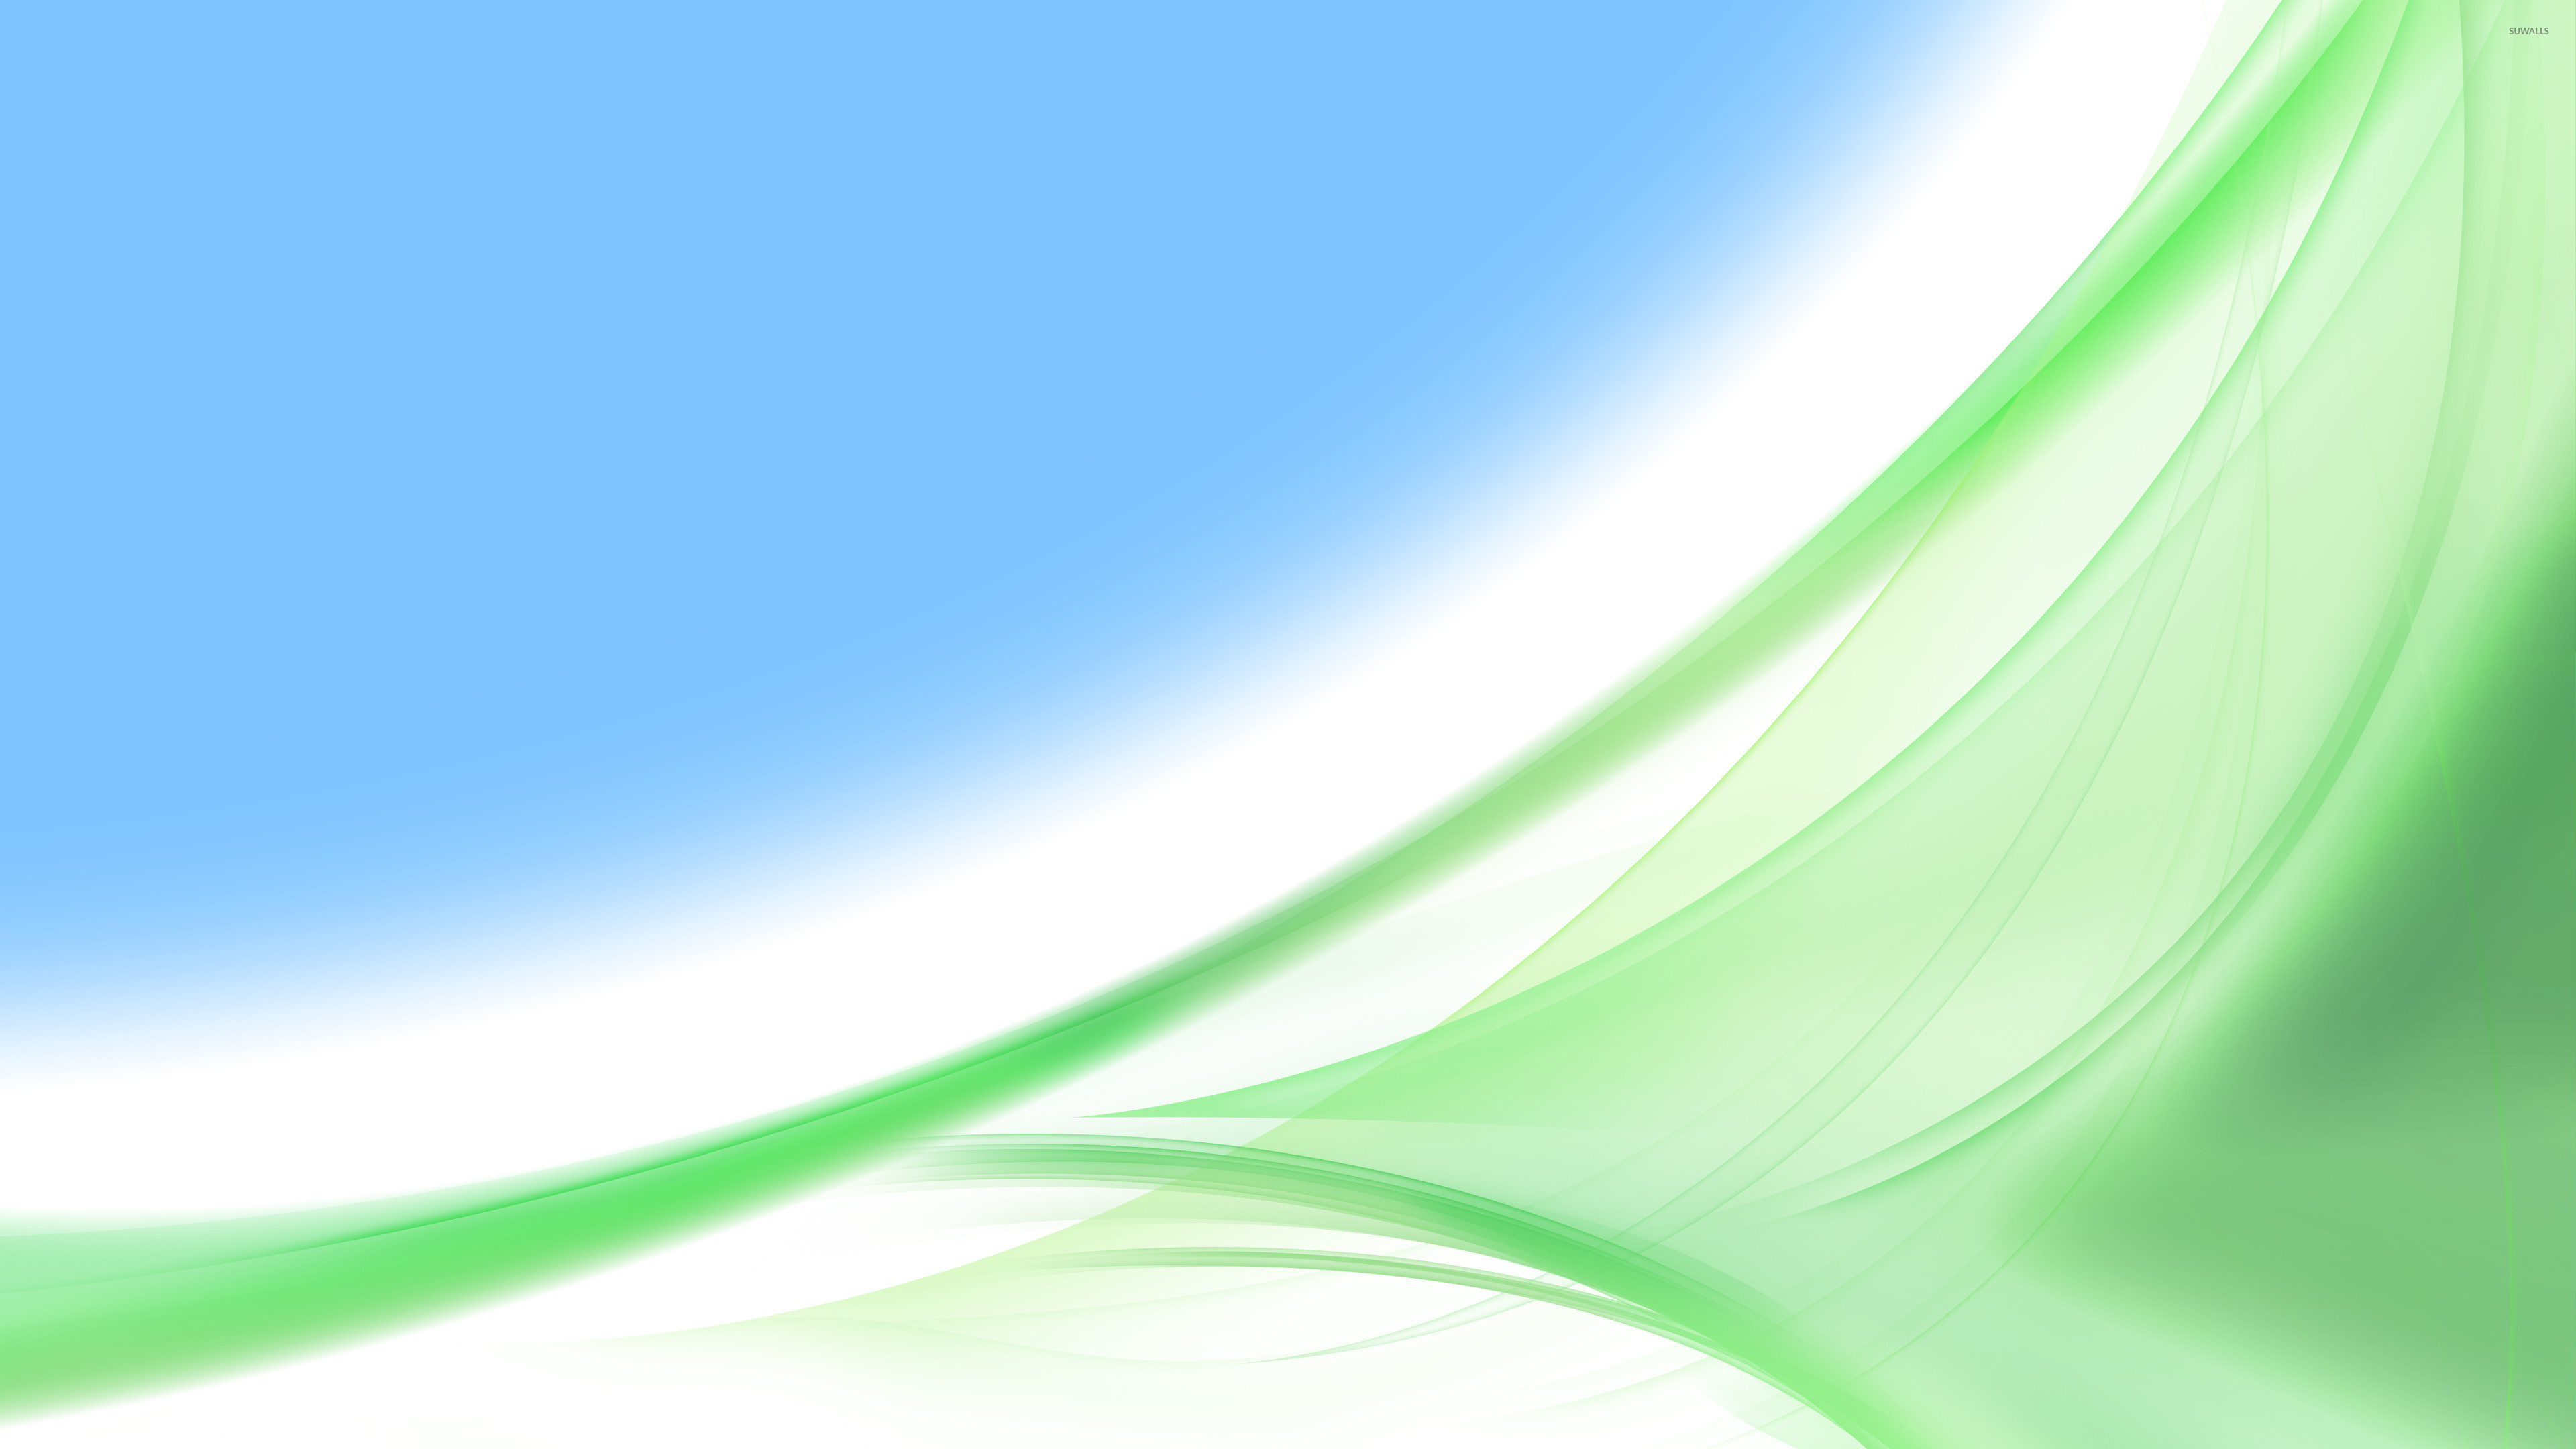 Green Curves 4 Wallpaper Abstract Wallpapers 44433